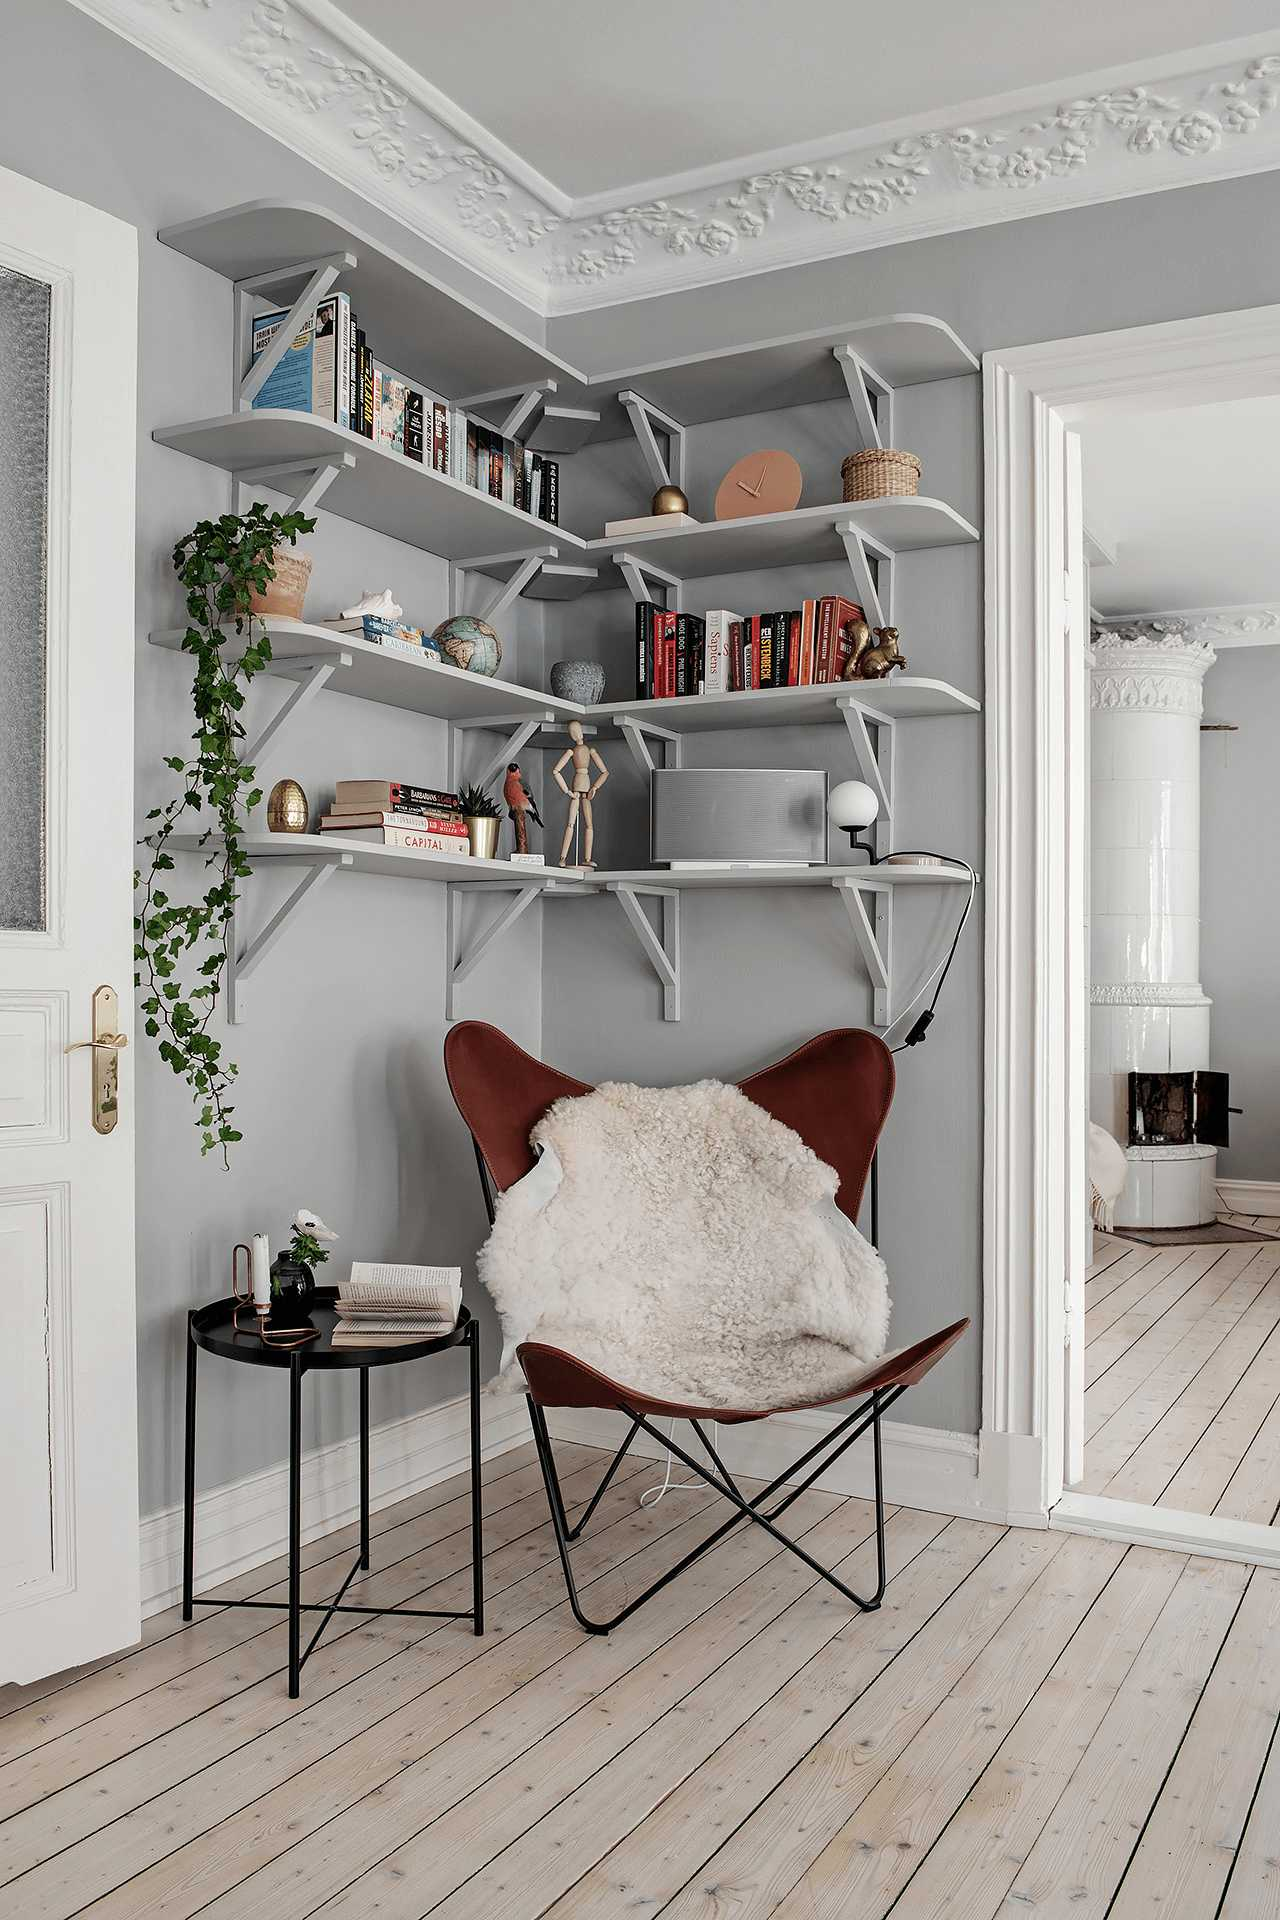 this-is-a-minimal-bookshelf-with-books-and-wooden-ornament-in-a-scandinavian-styled-living-room-